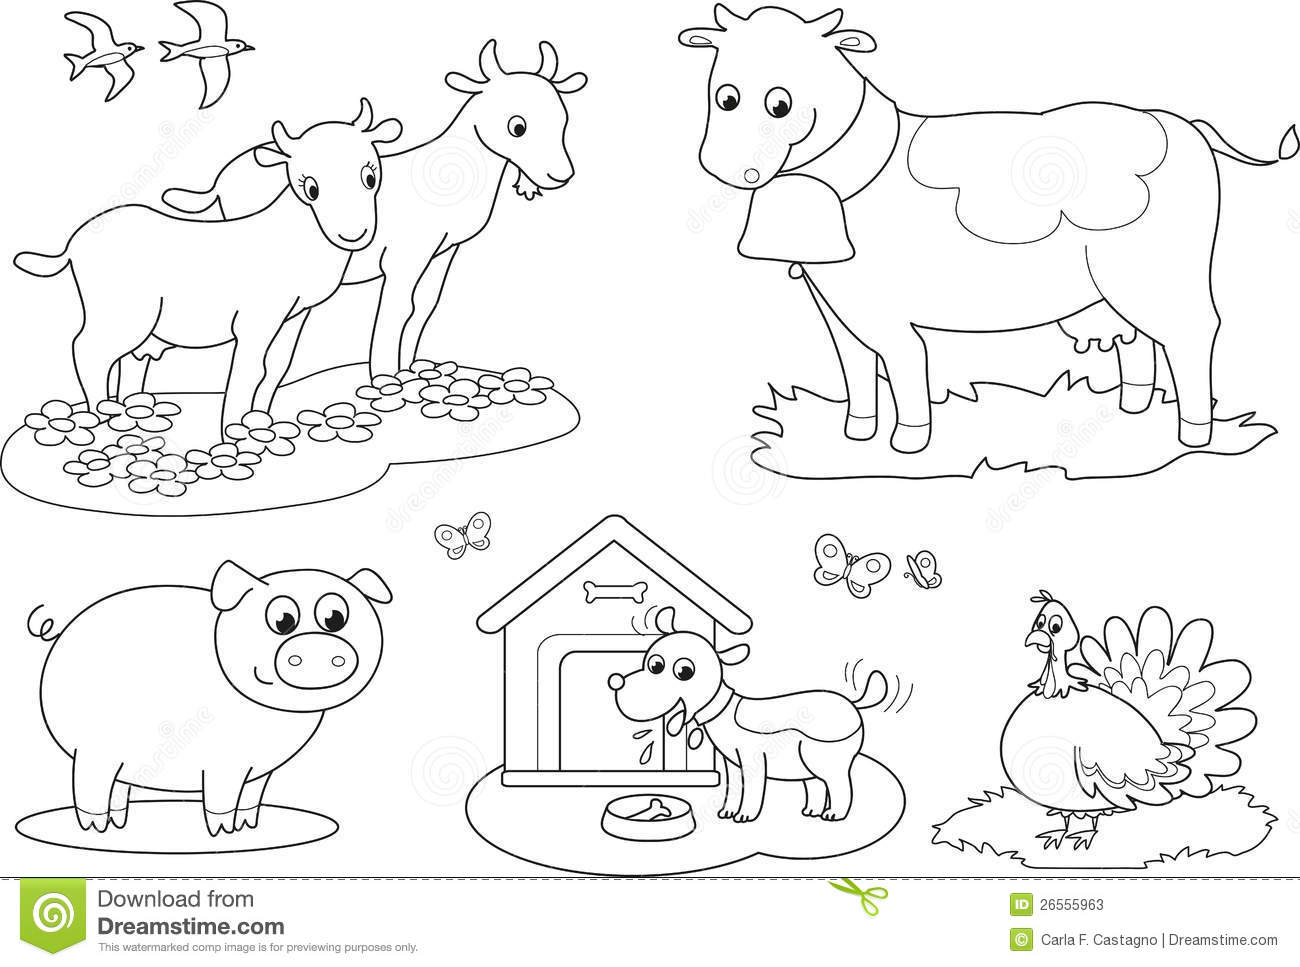 Coloring farm animals 2 stock vector. Illustration of black - 26555963